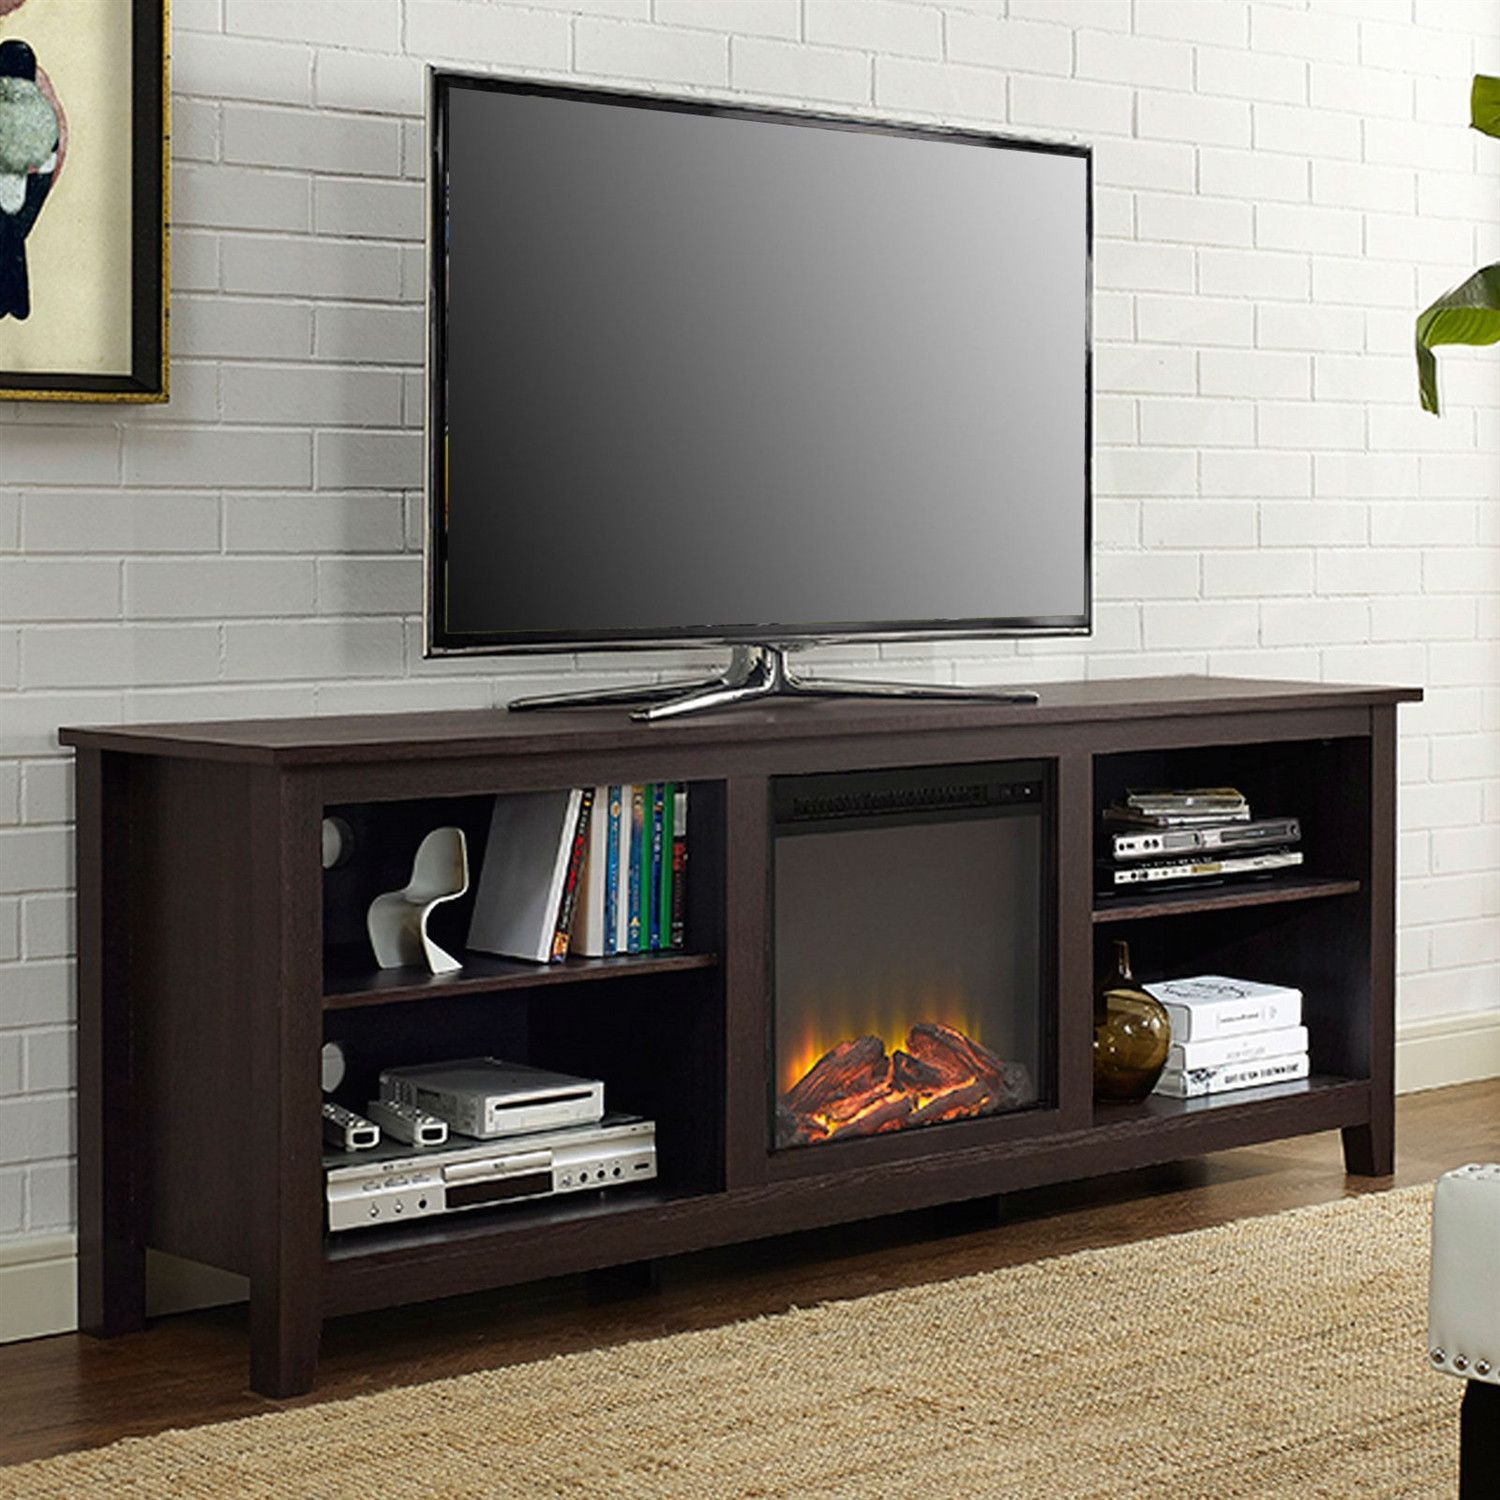 Espresso 70 Inch Electric Fireplace Tv Stand Space Heater Electric